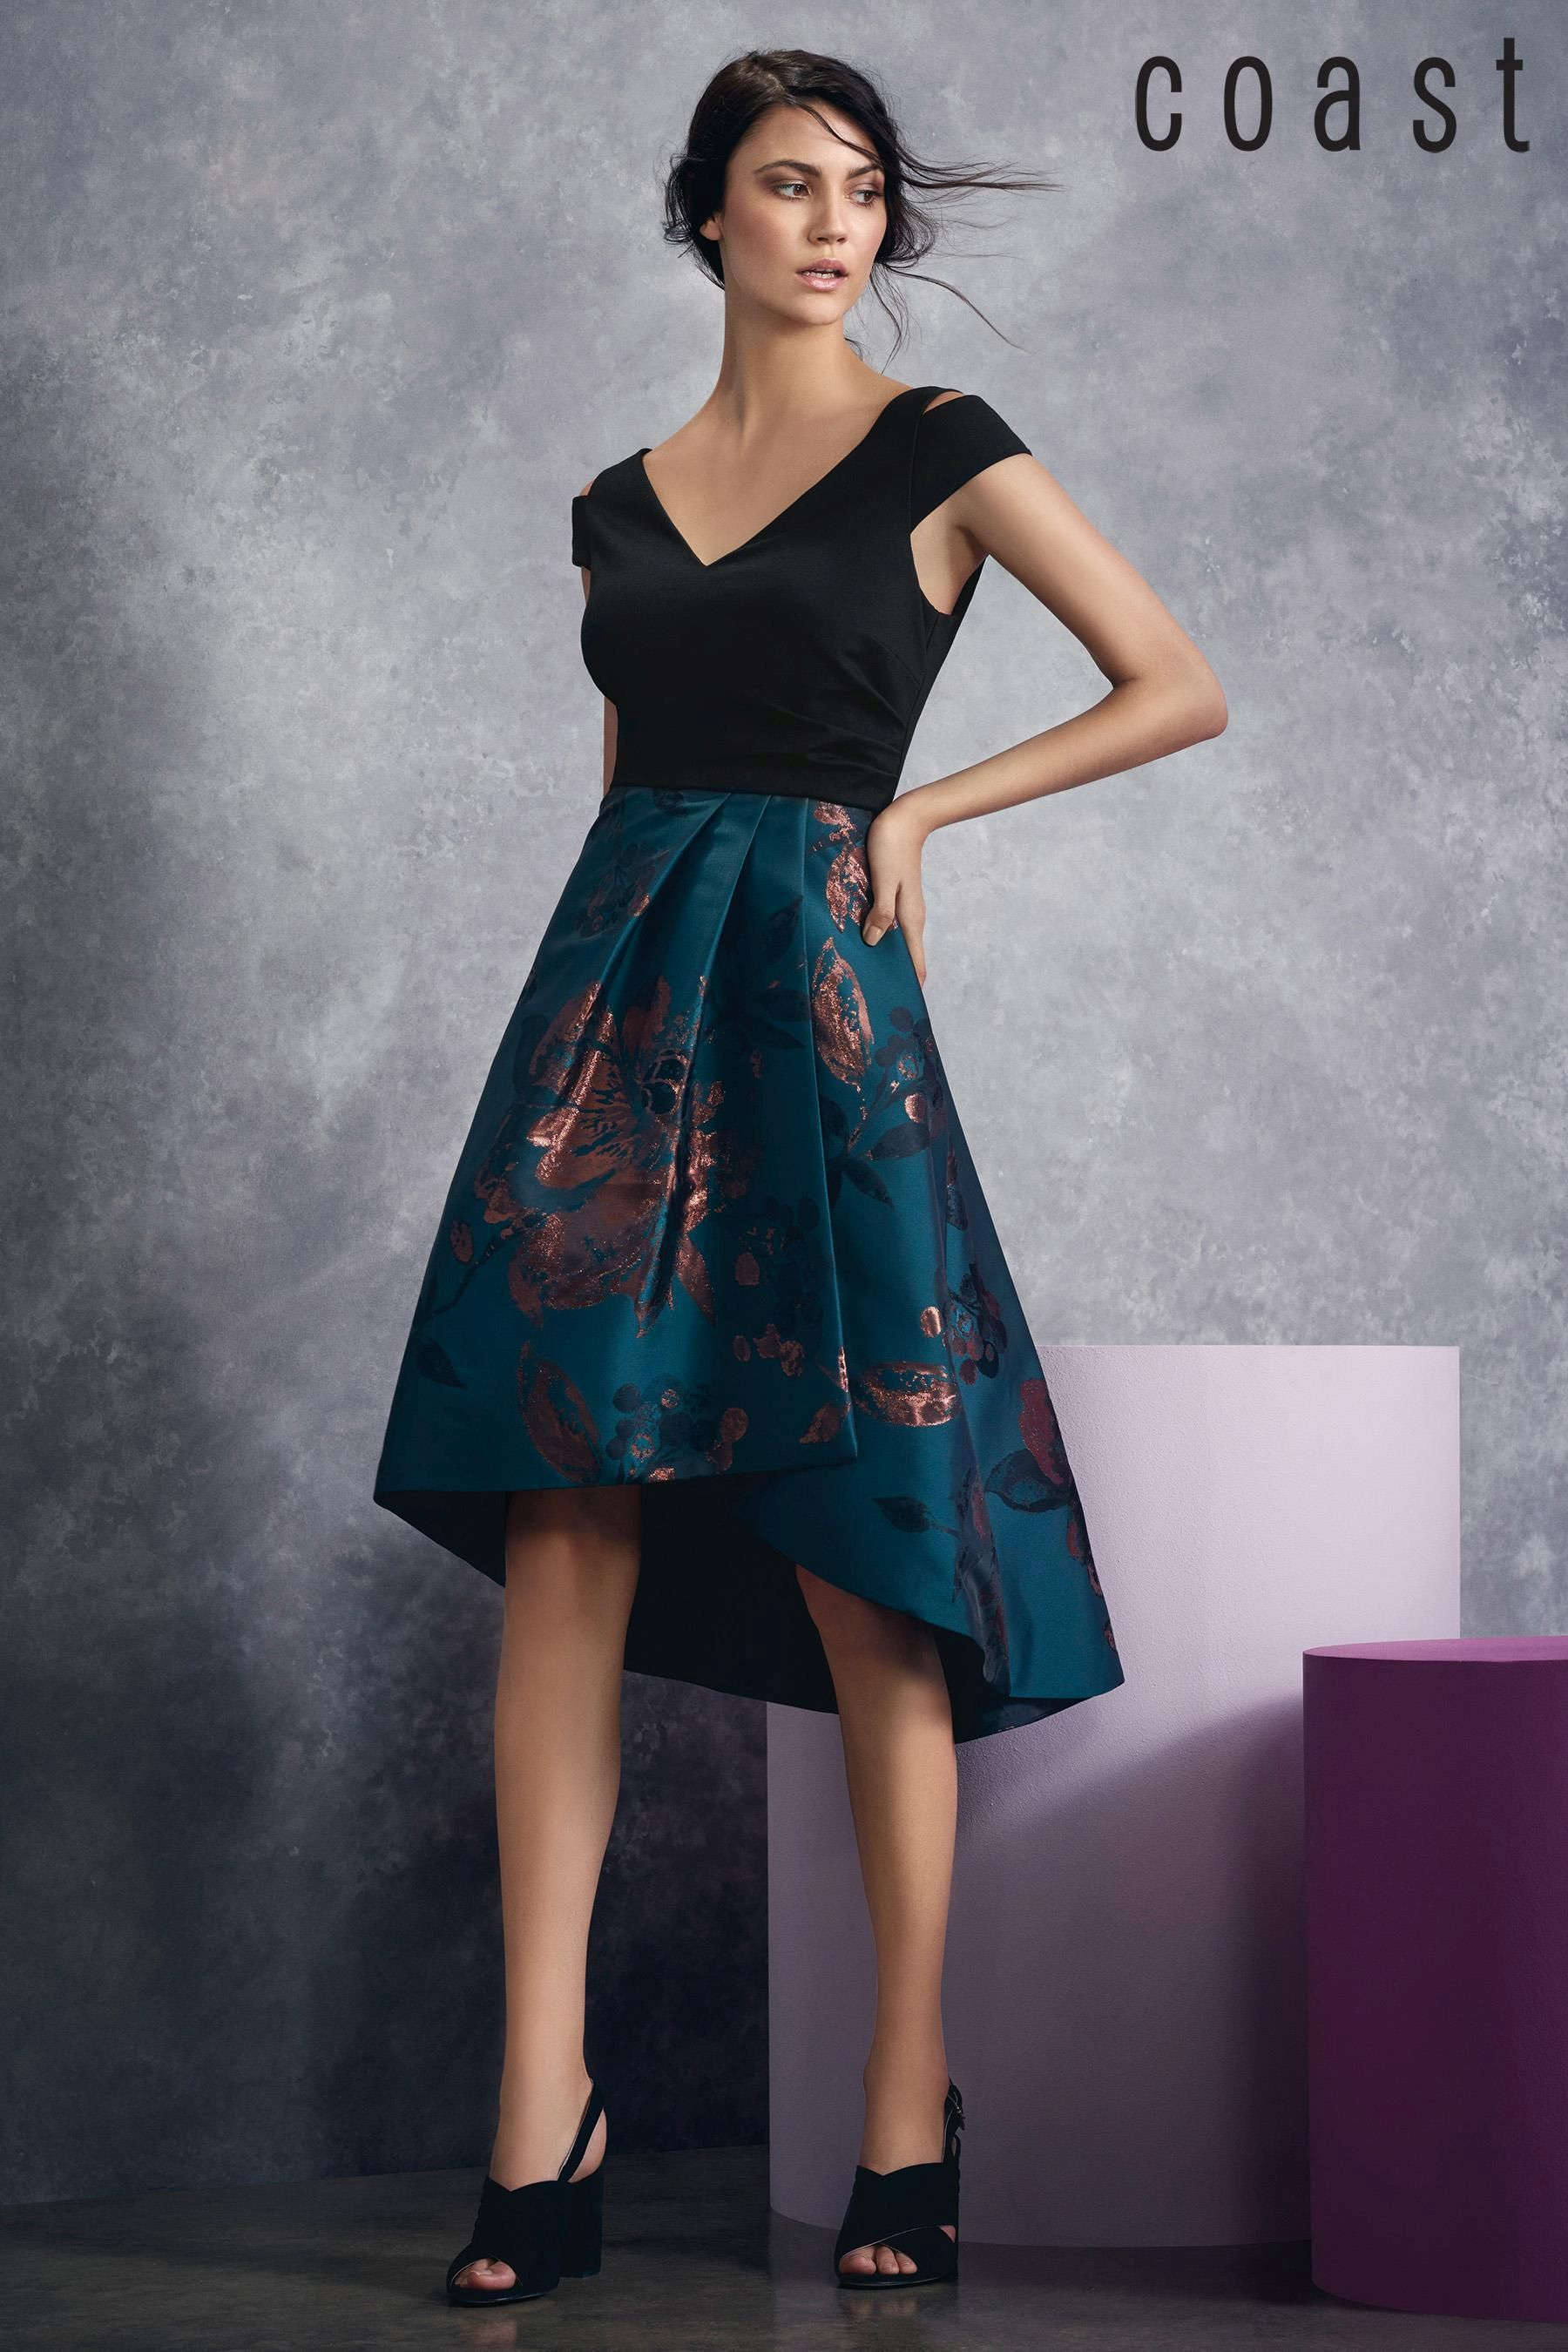 Next online party dresses - Buy Coast Green Anya Jacquard Dress From The Next Uk Online Shop My Style Pinterest Jacquard Dress Uk Online And Clothes